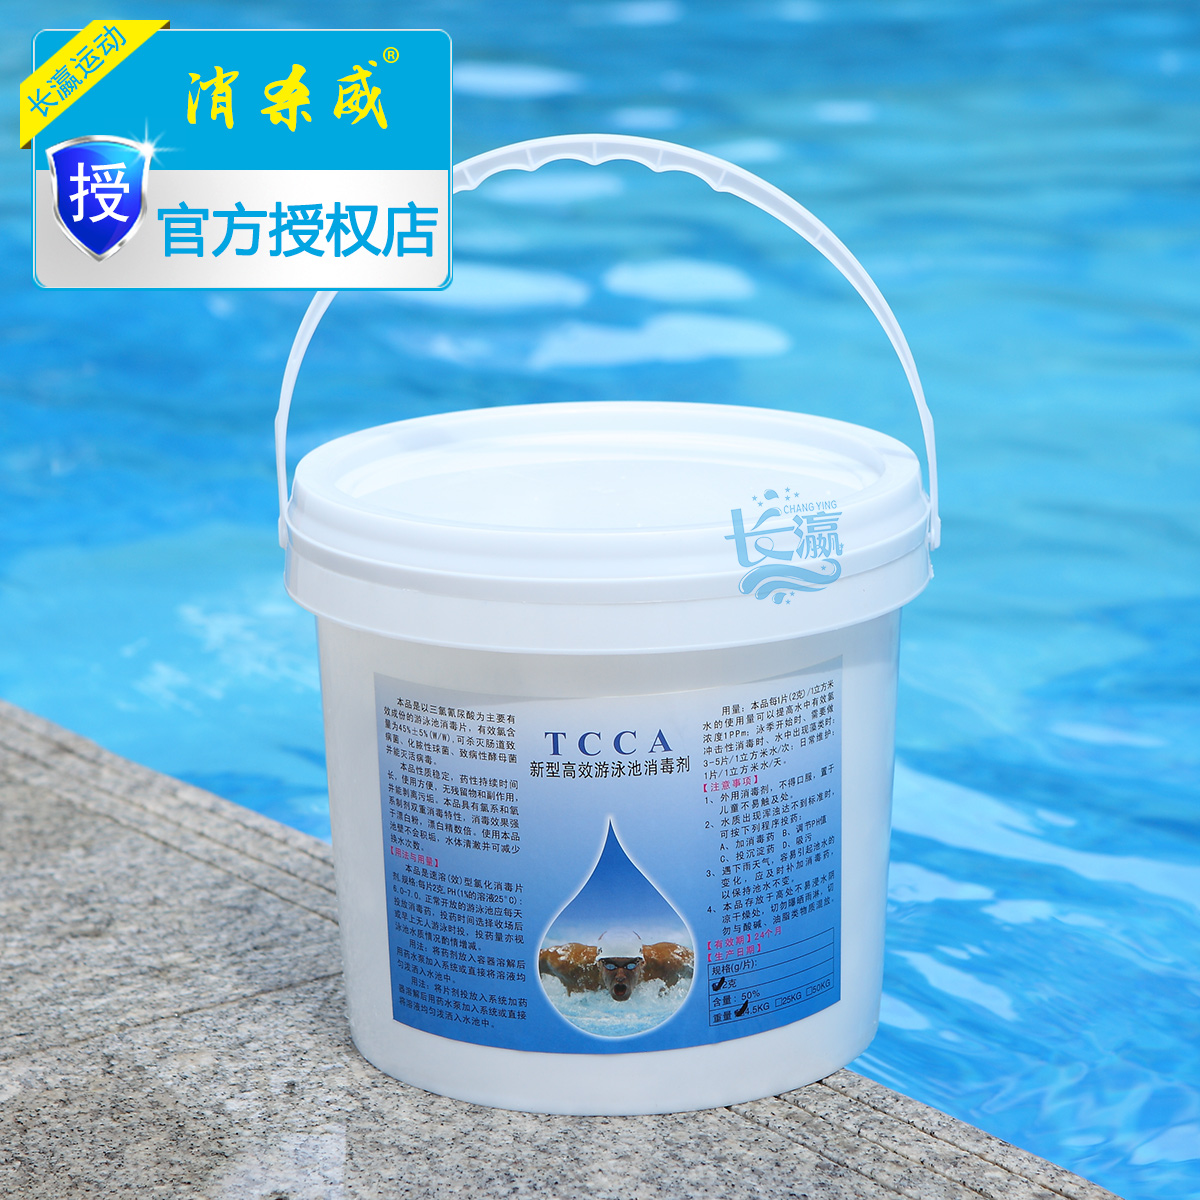 Usd Swimming Pool Disinfection Powder Pool Disinfection Powder Chlorine Tablets Gas